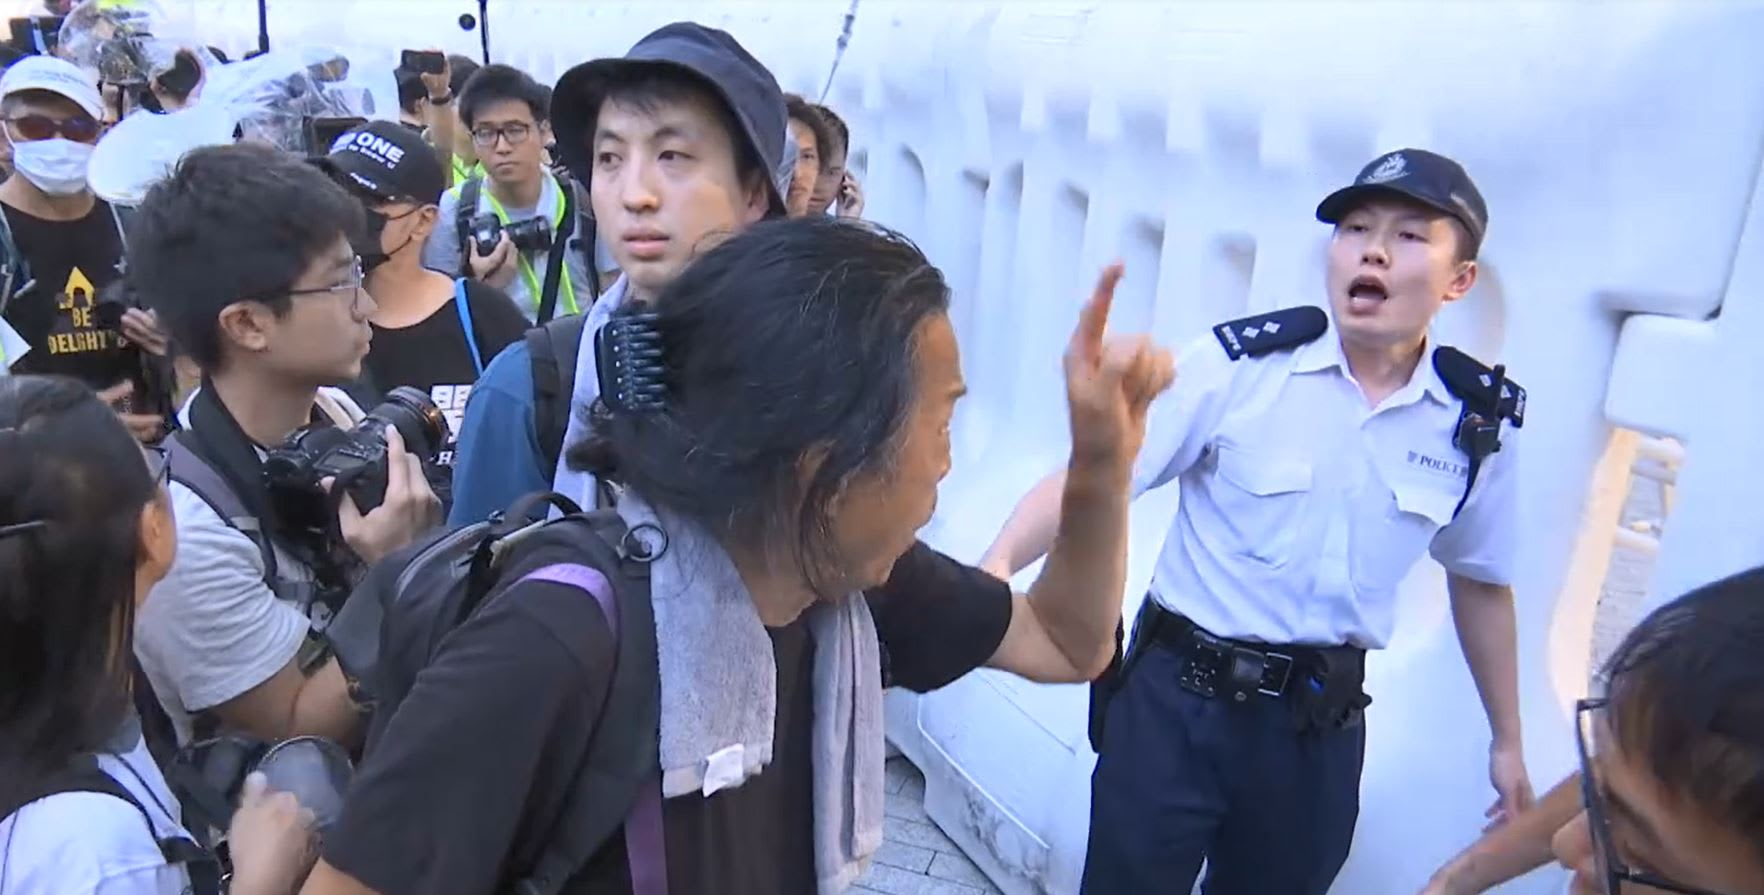 Hong Kong Police Force: The challenges ahead